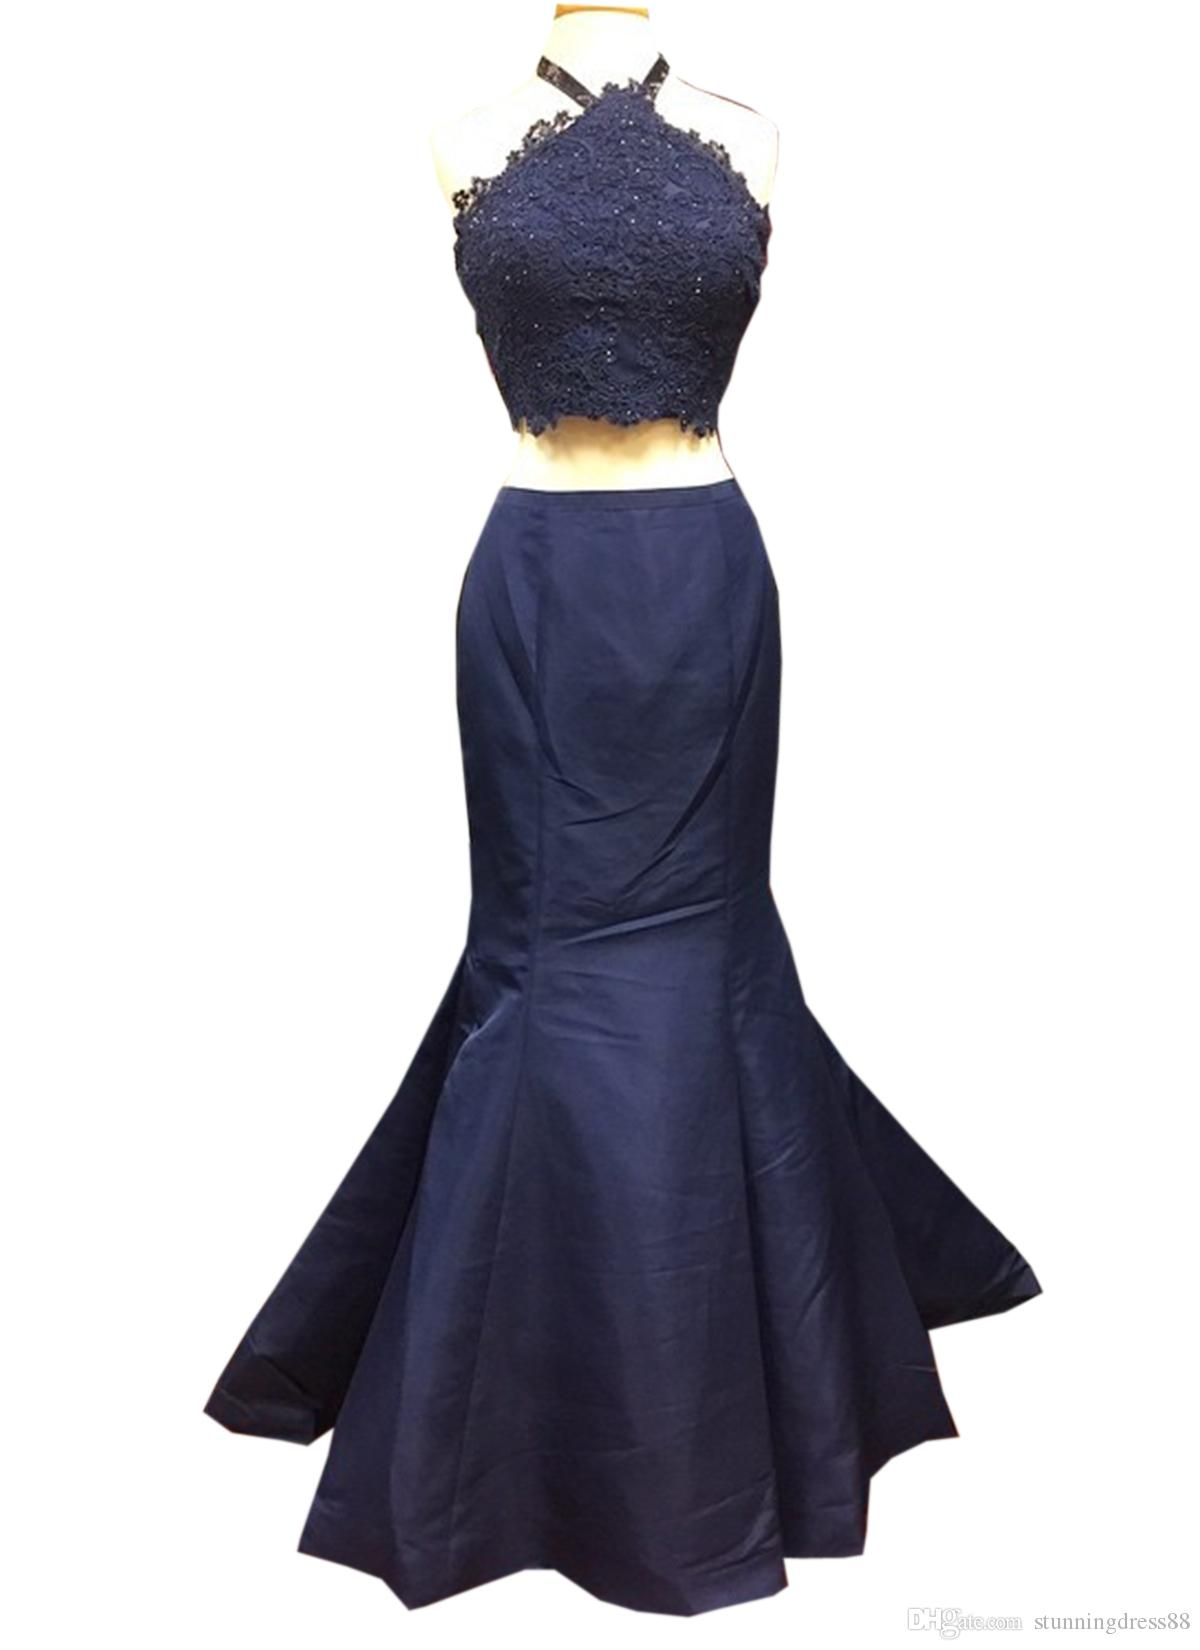 Sexy Navy Mermaid Evening Gowns Long Halter Lace Applique Backless Prom Formal Dresses Bridesmaids Evening Wear Party Dress Cheap